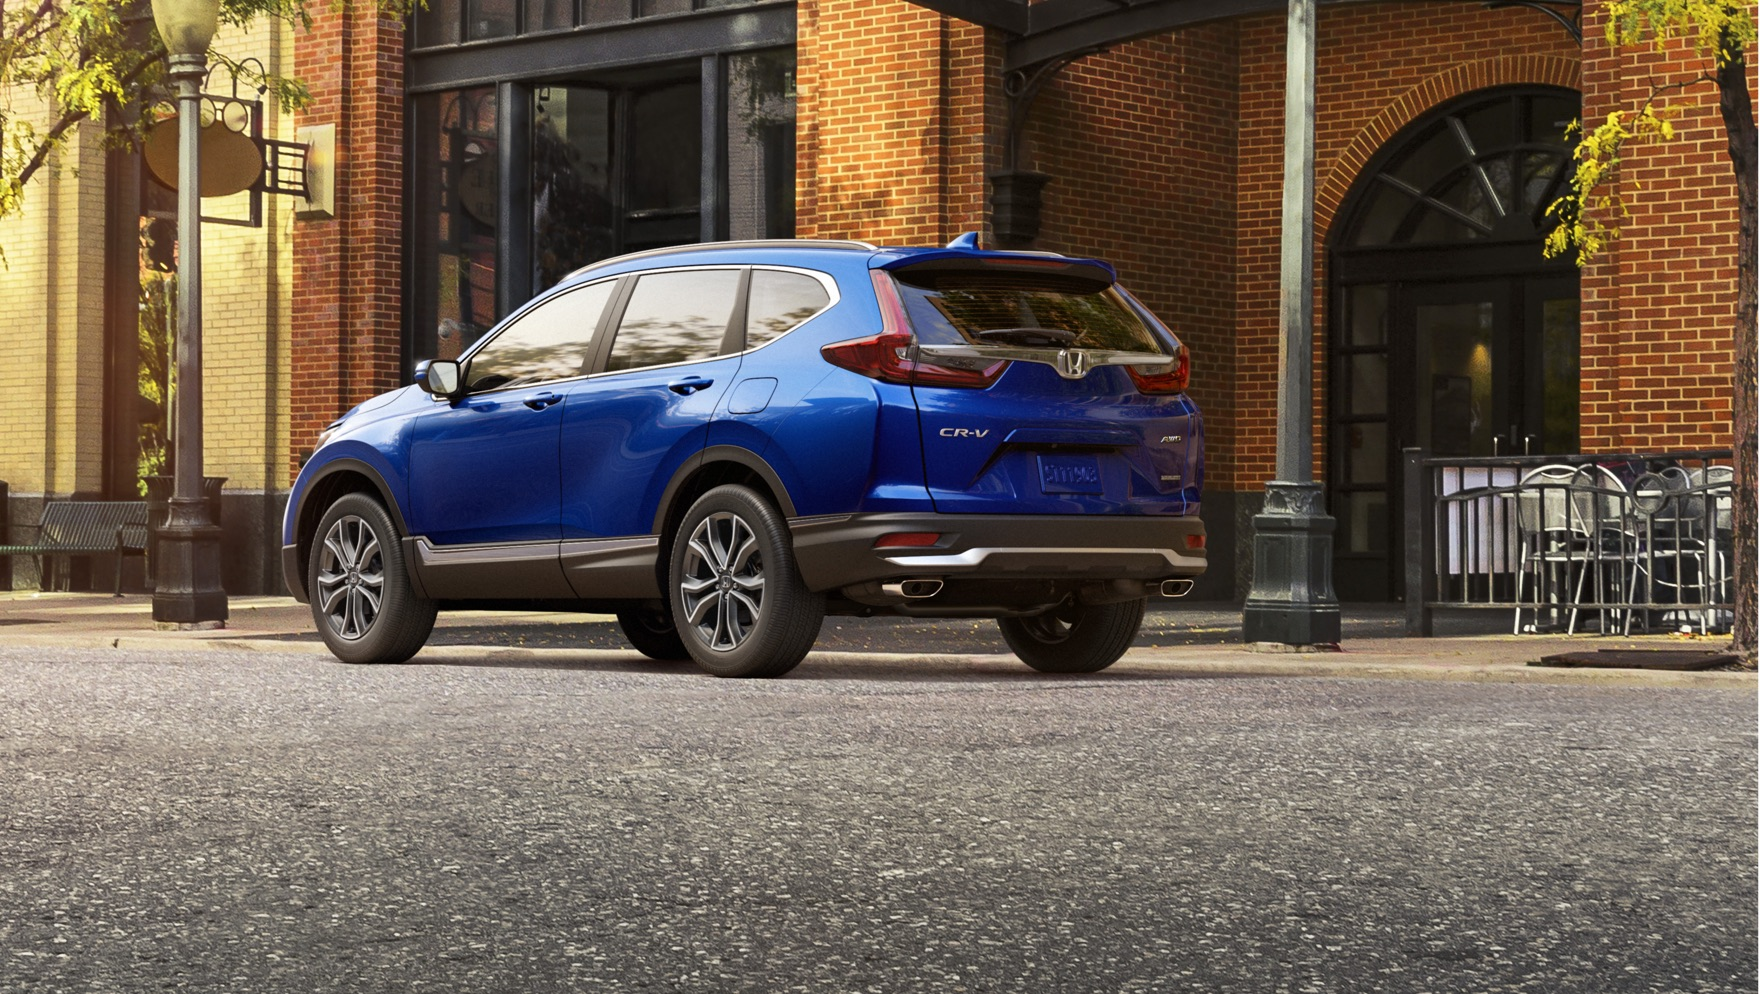 Rear driver-side view of the 2020 Honda CR-V in Aegean Blue Metallic parked on a city street.